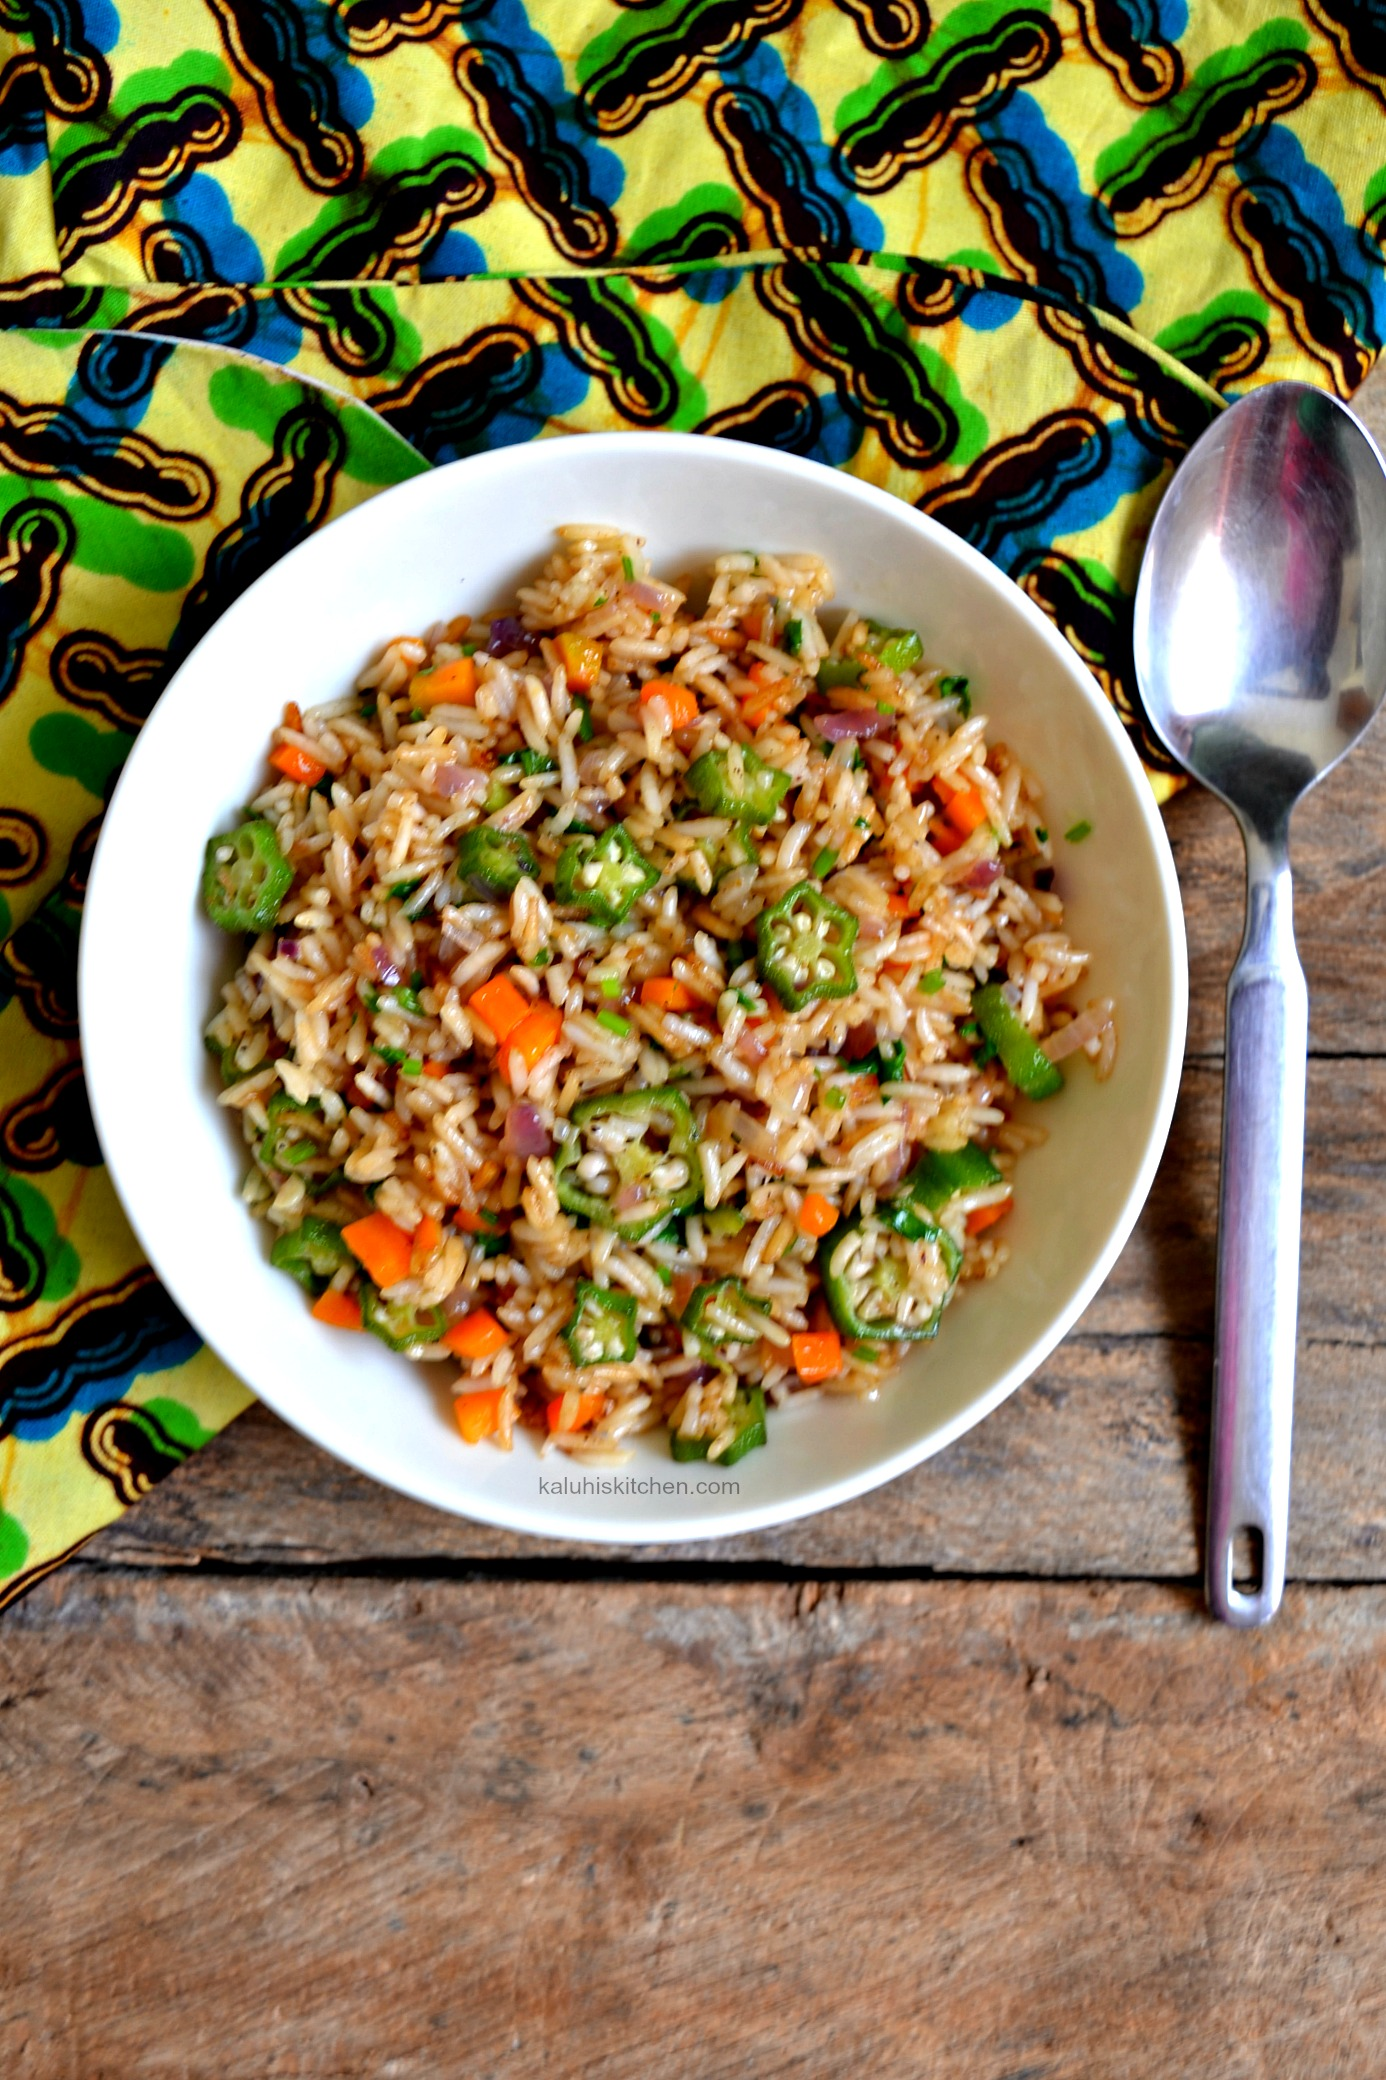 Rosemary and Okra Fried Rice